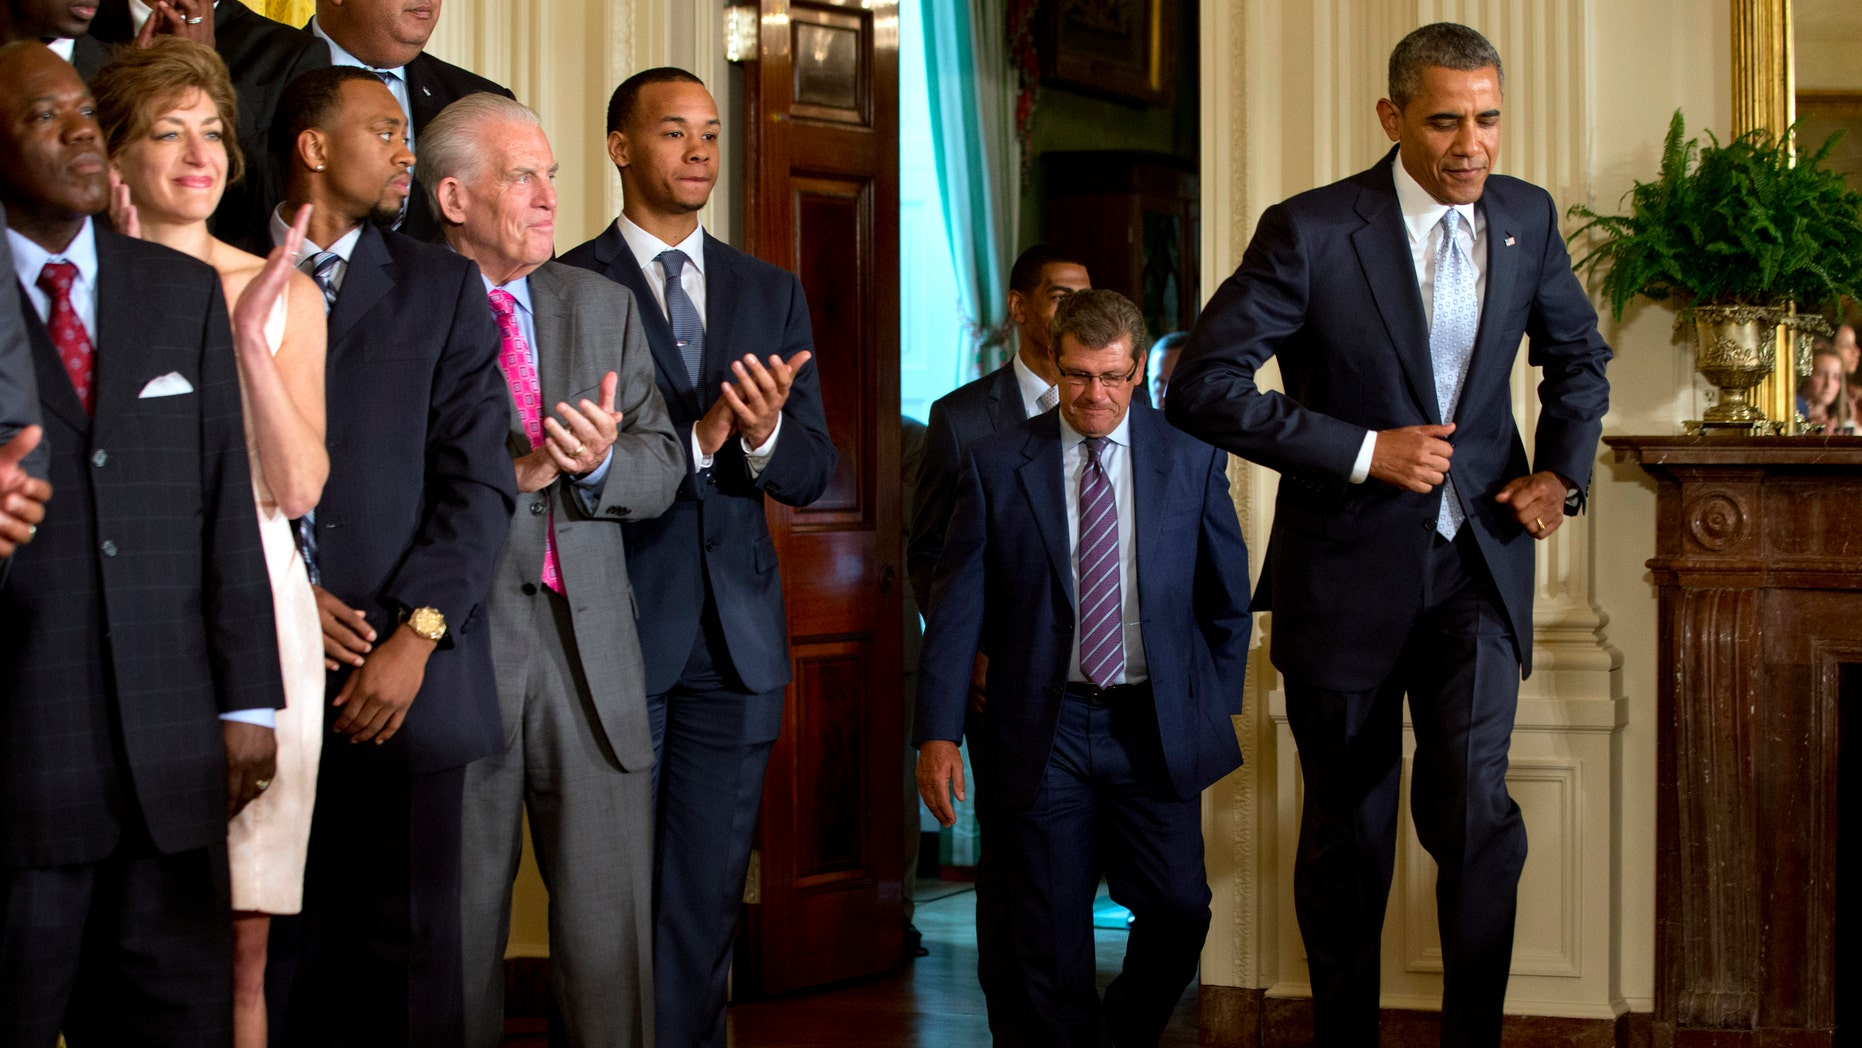 June 9, 2014: President Barack Obama jogging in to an event honoring the NCAA Basketball Champion UConn Huskies Men's and Women's Basketball teams, and their 2014 NCAA Championships in the East Room of the White House in Washington.